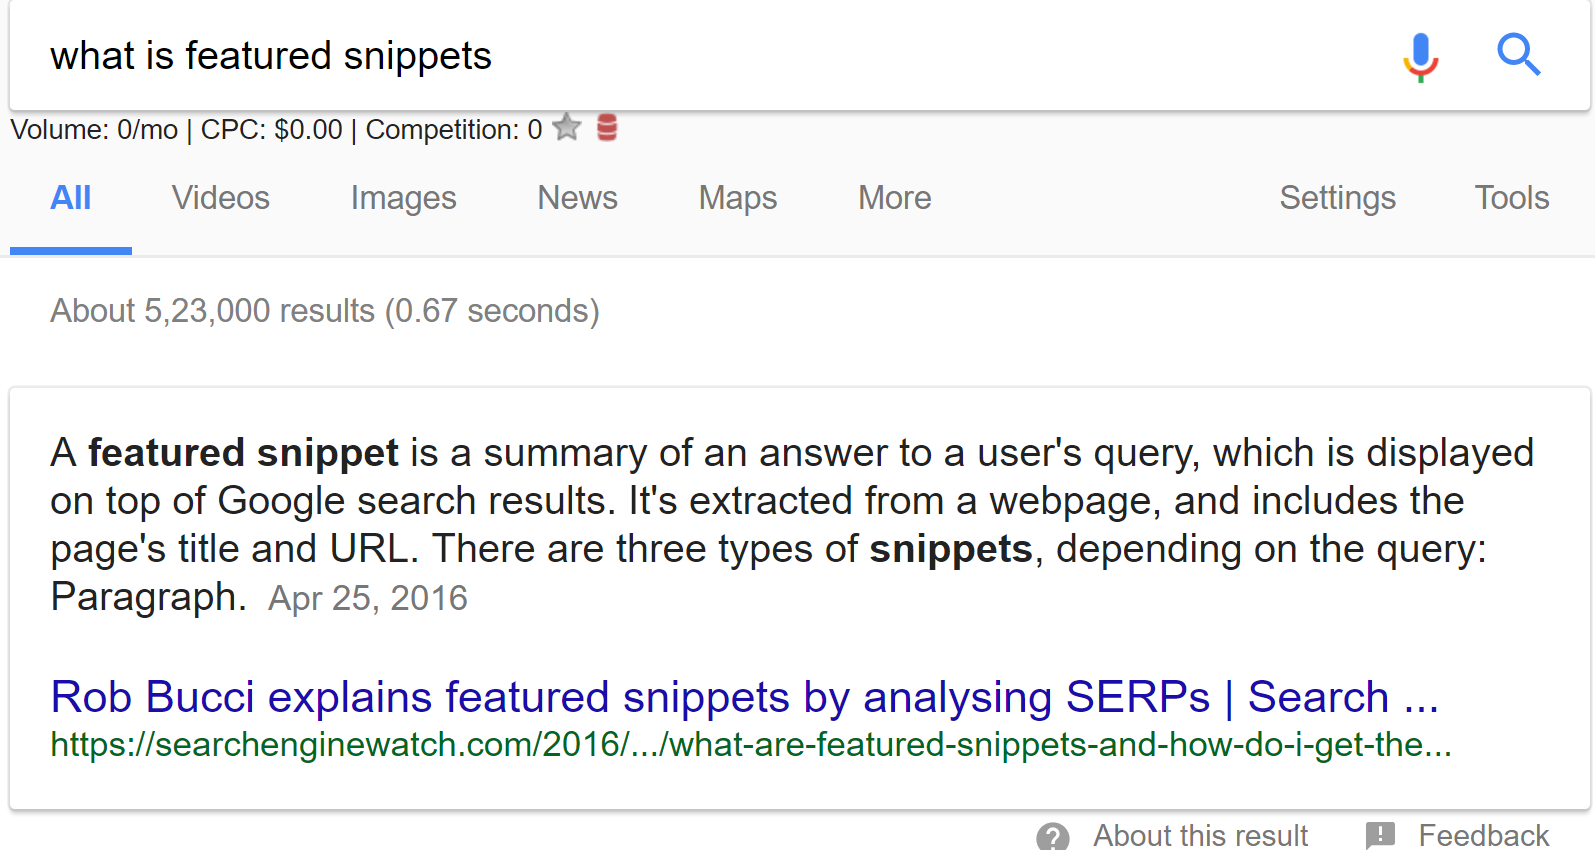 What is Featured Snippet